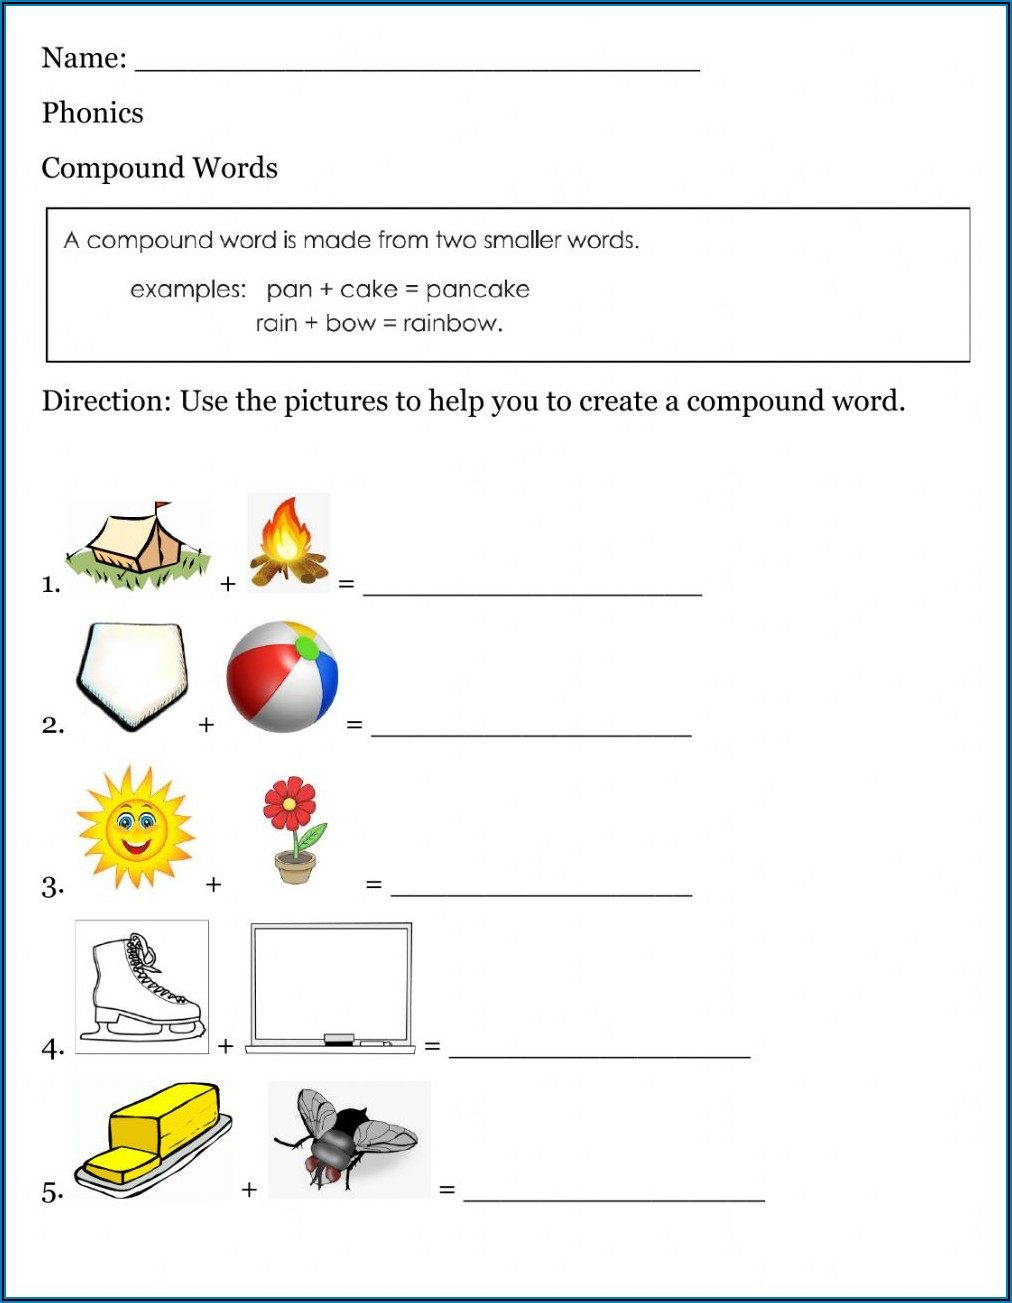 Compound Word Worksheets For Grade 4 With Answers